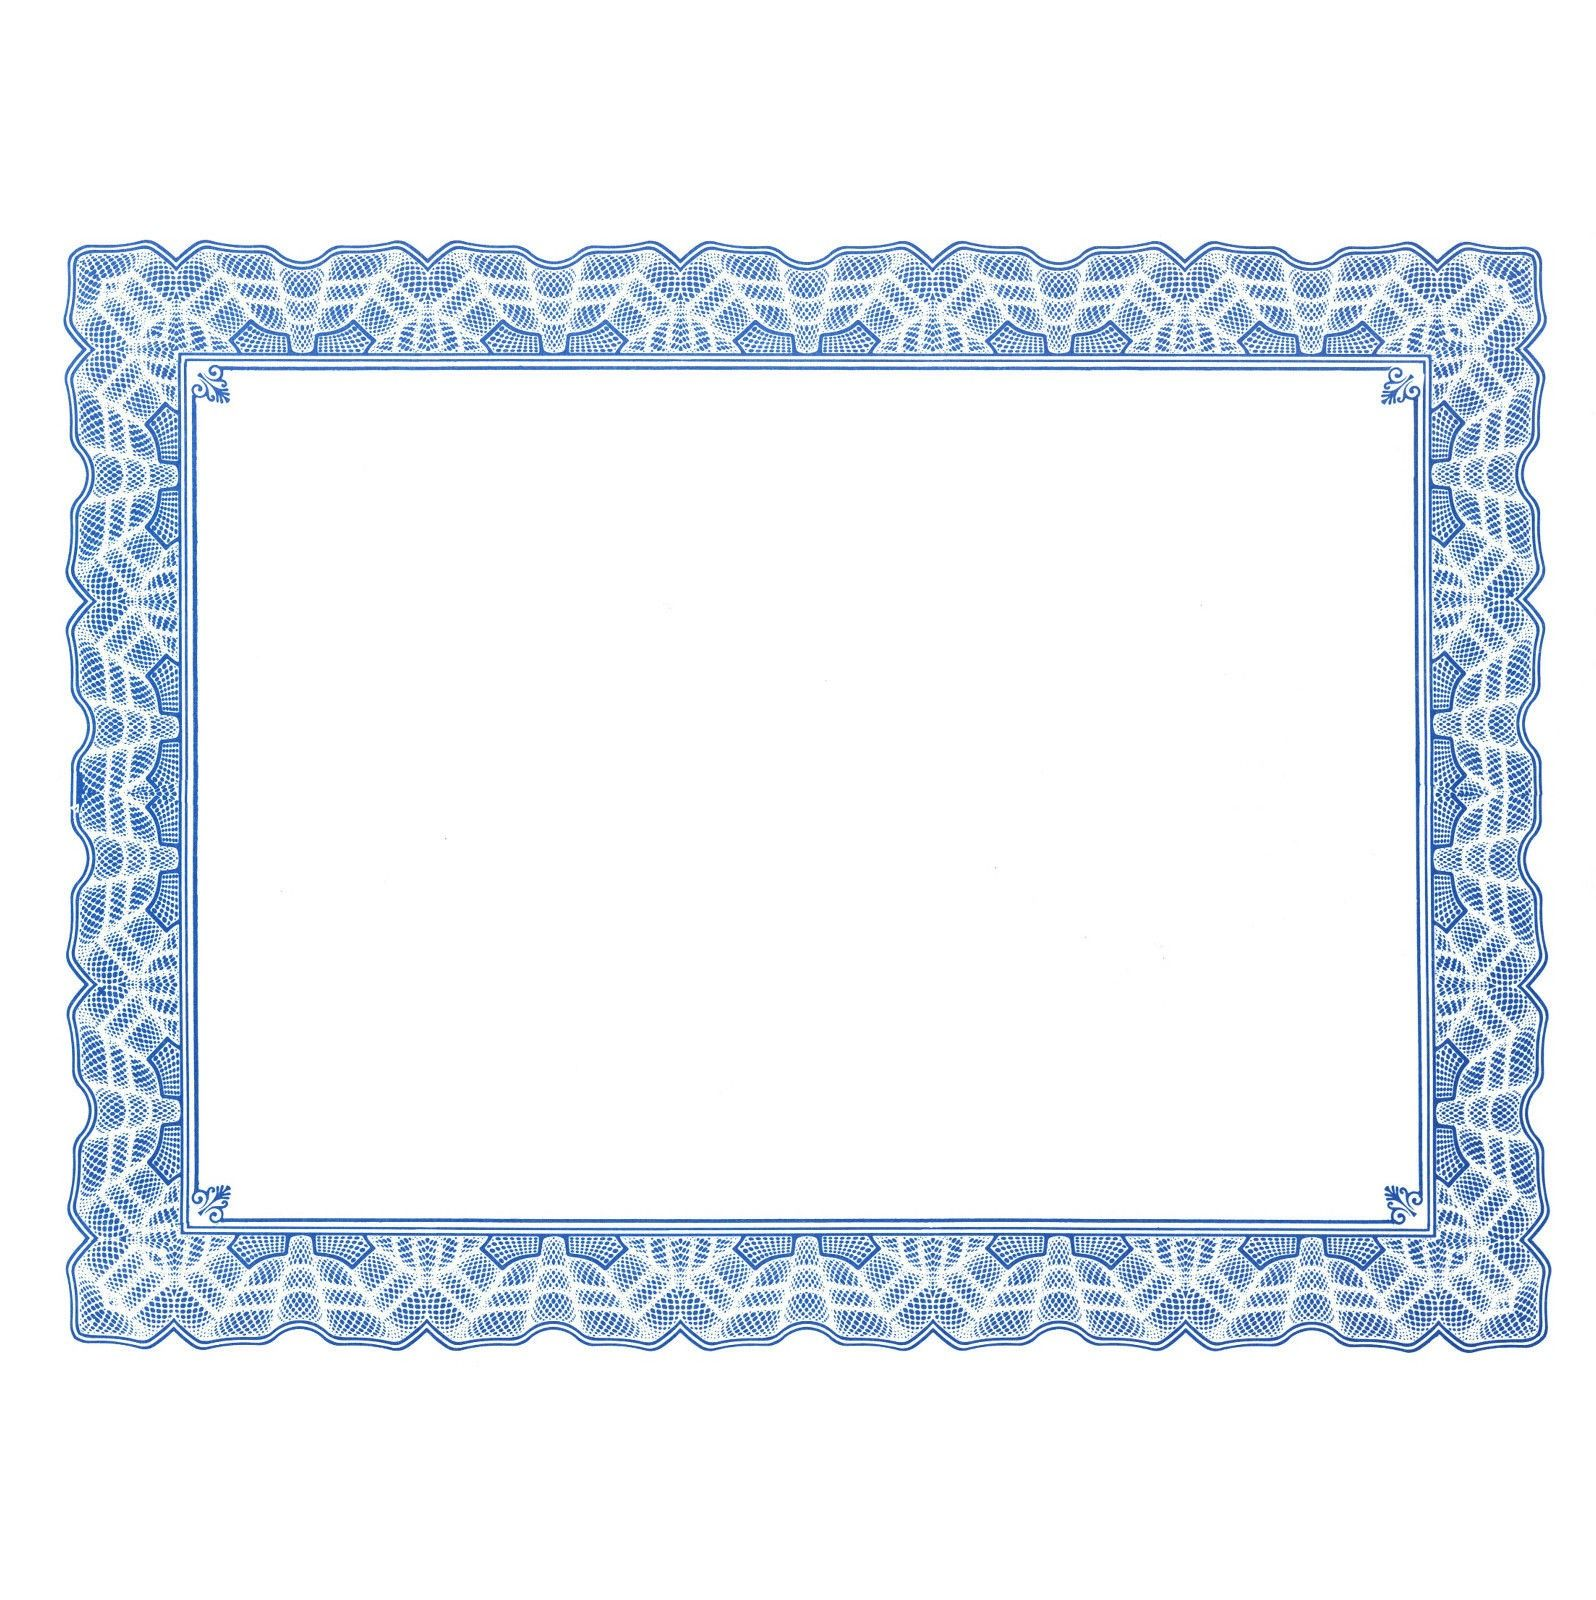 Free certificate border templates for word besttemplates123 best free certificate border templates for word besttemplates123 maxwellsz